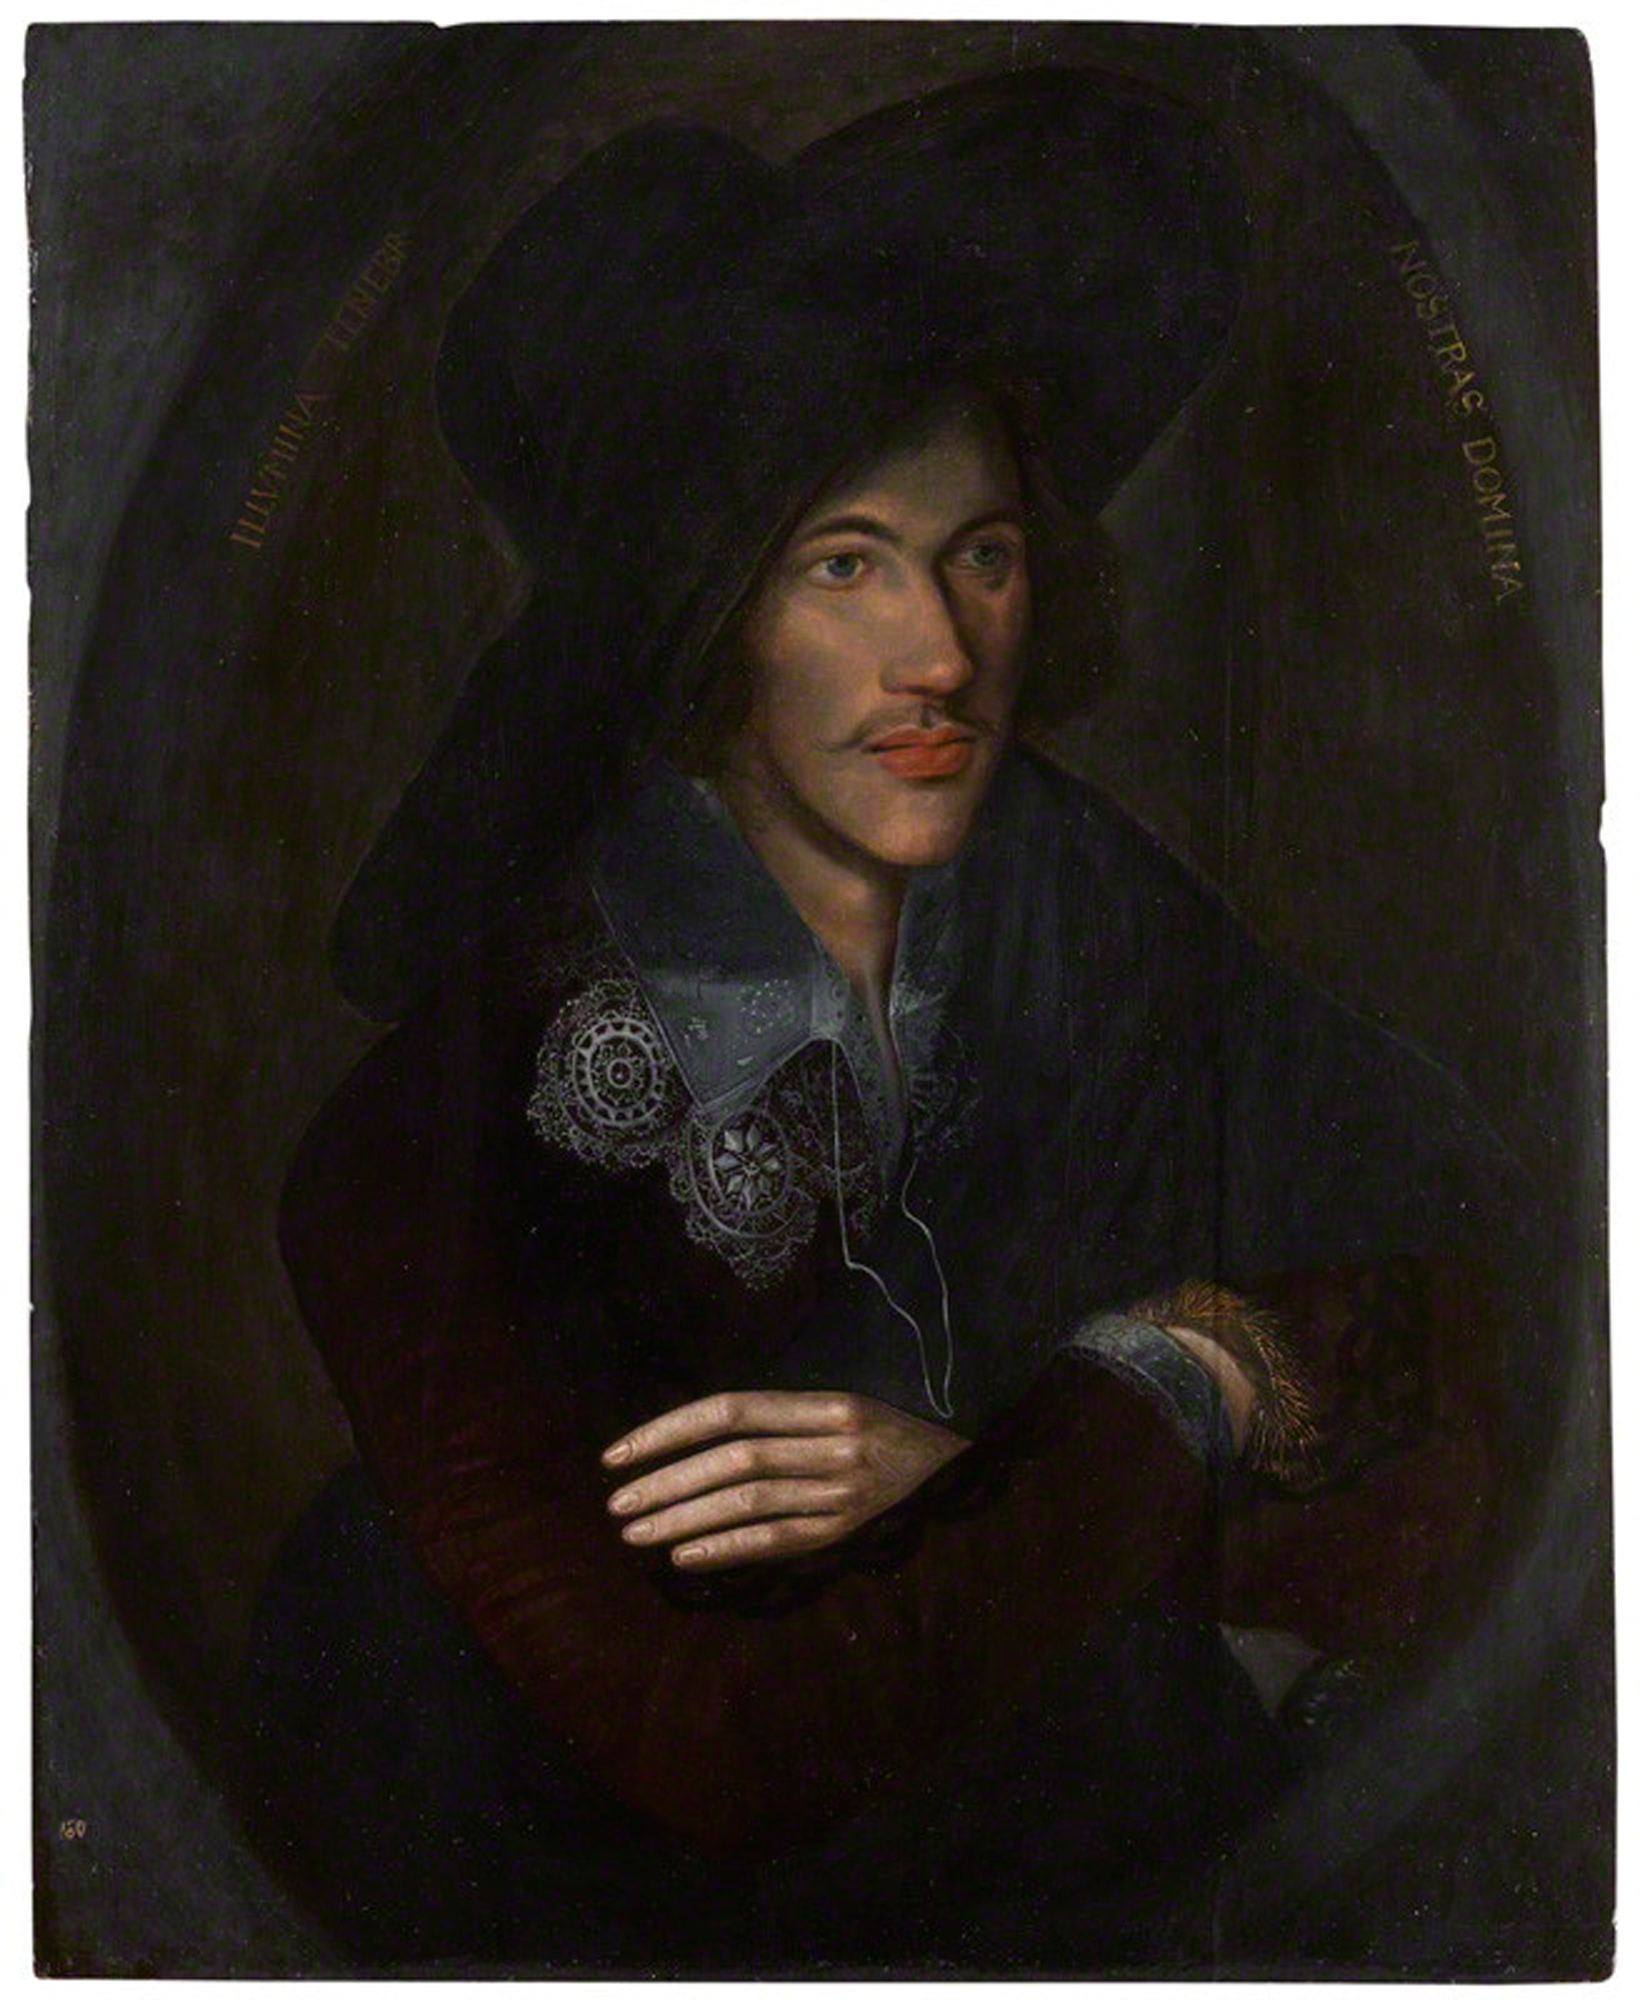 Portrait of John Donne, c. 1595